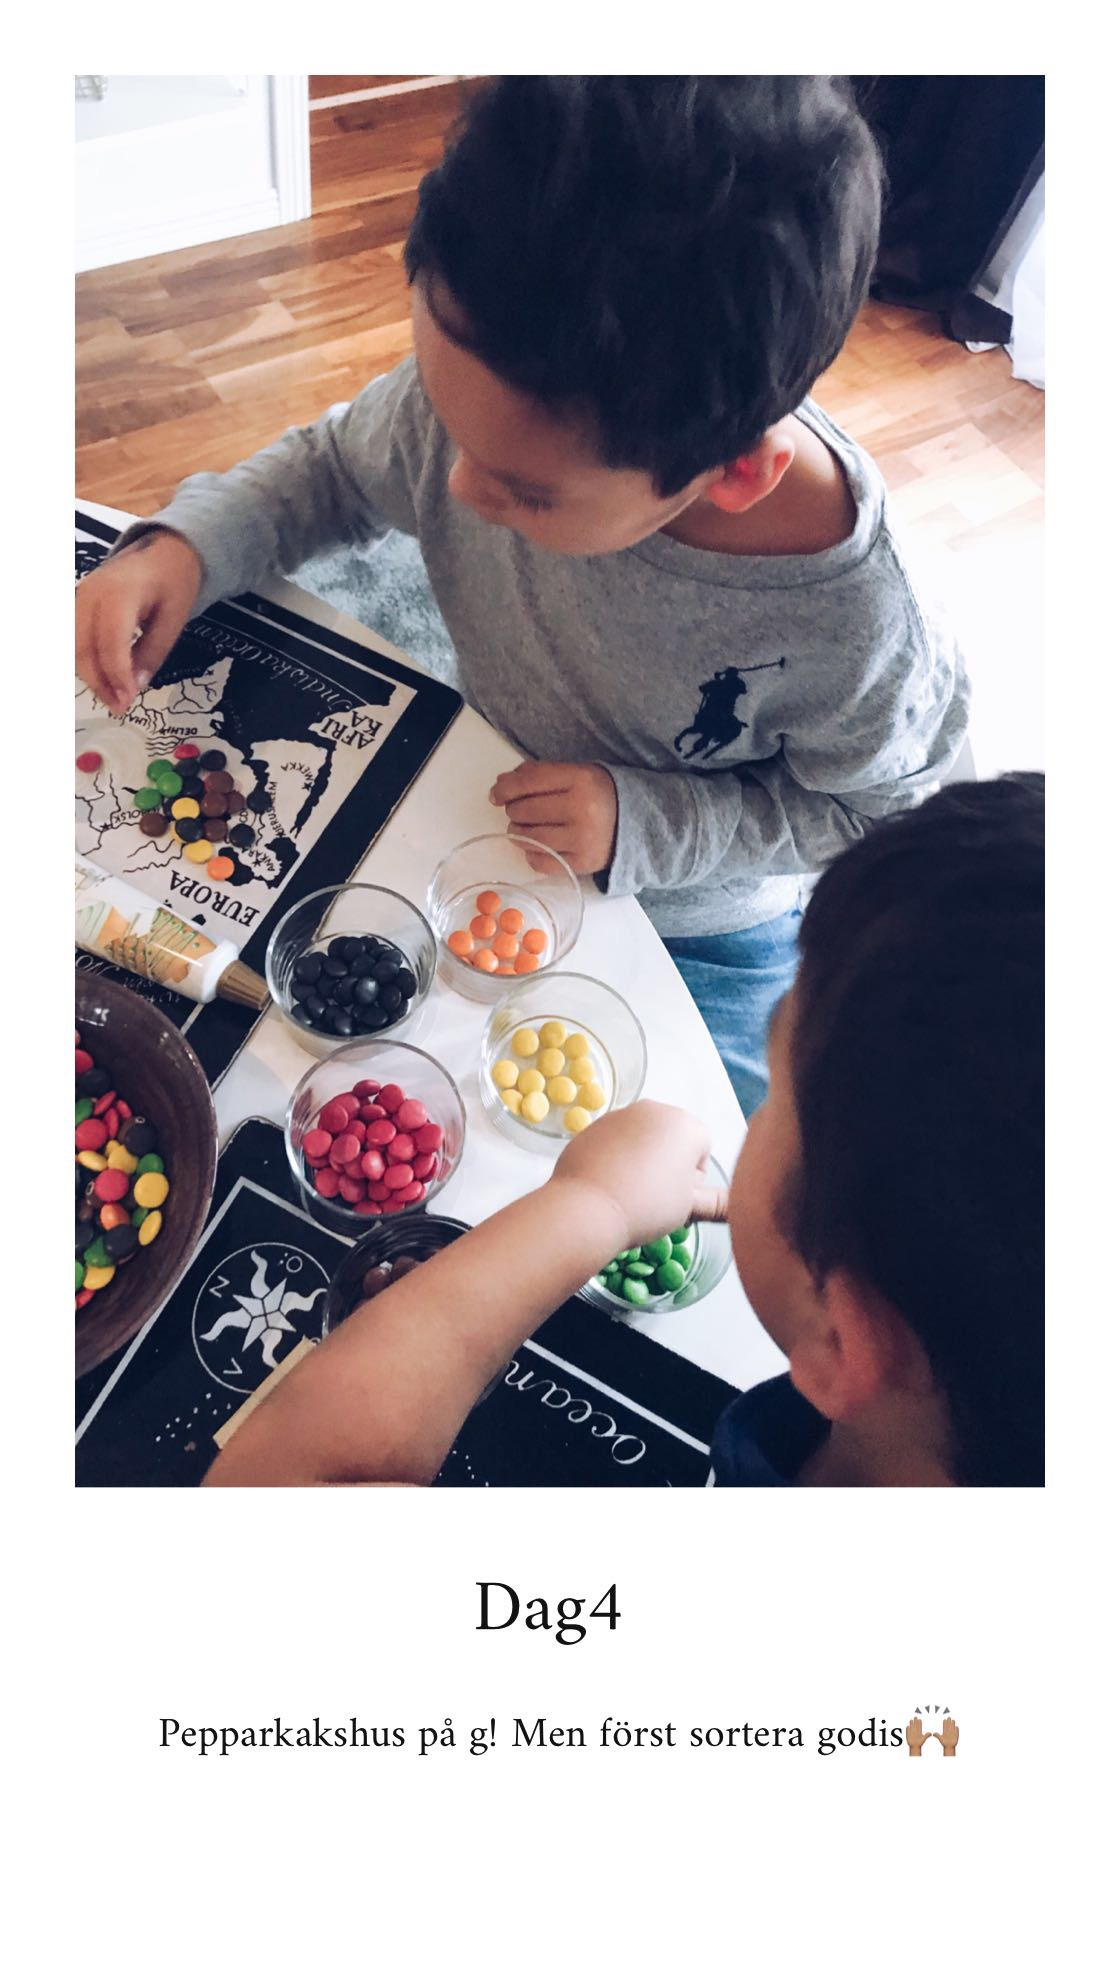 4004CD96-FB42-44DB-8C2F-AE3D217E250E